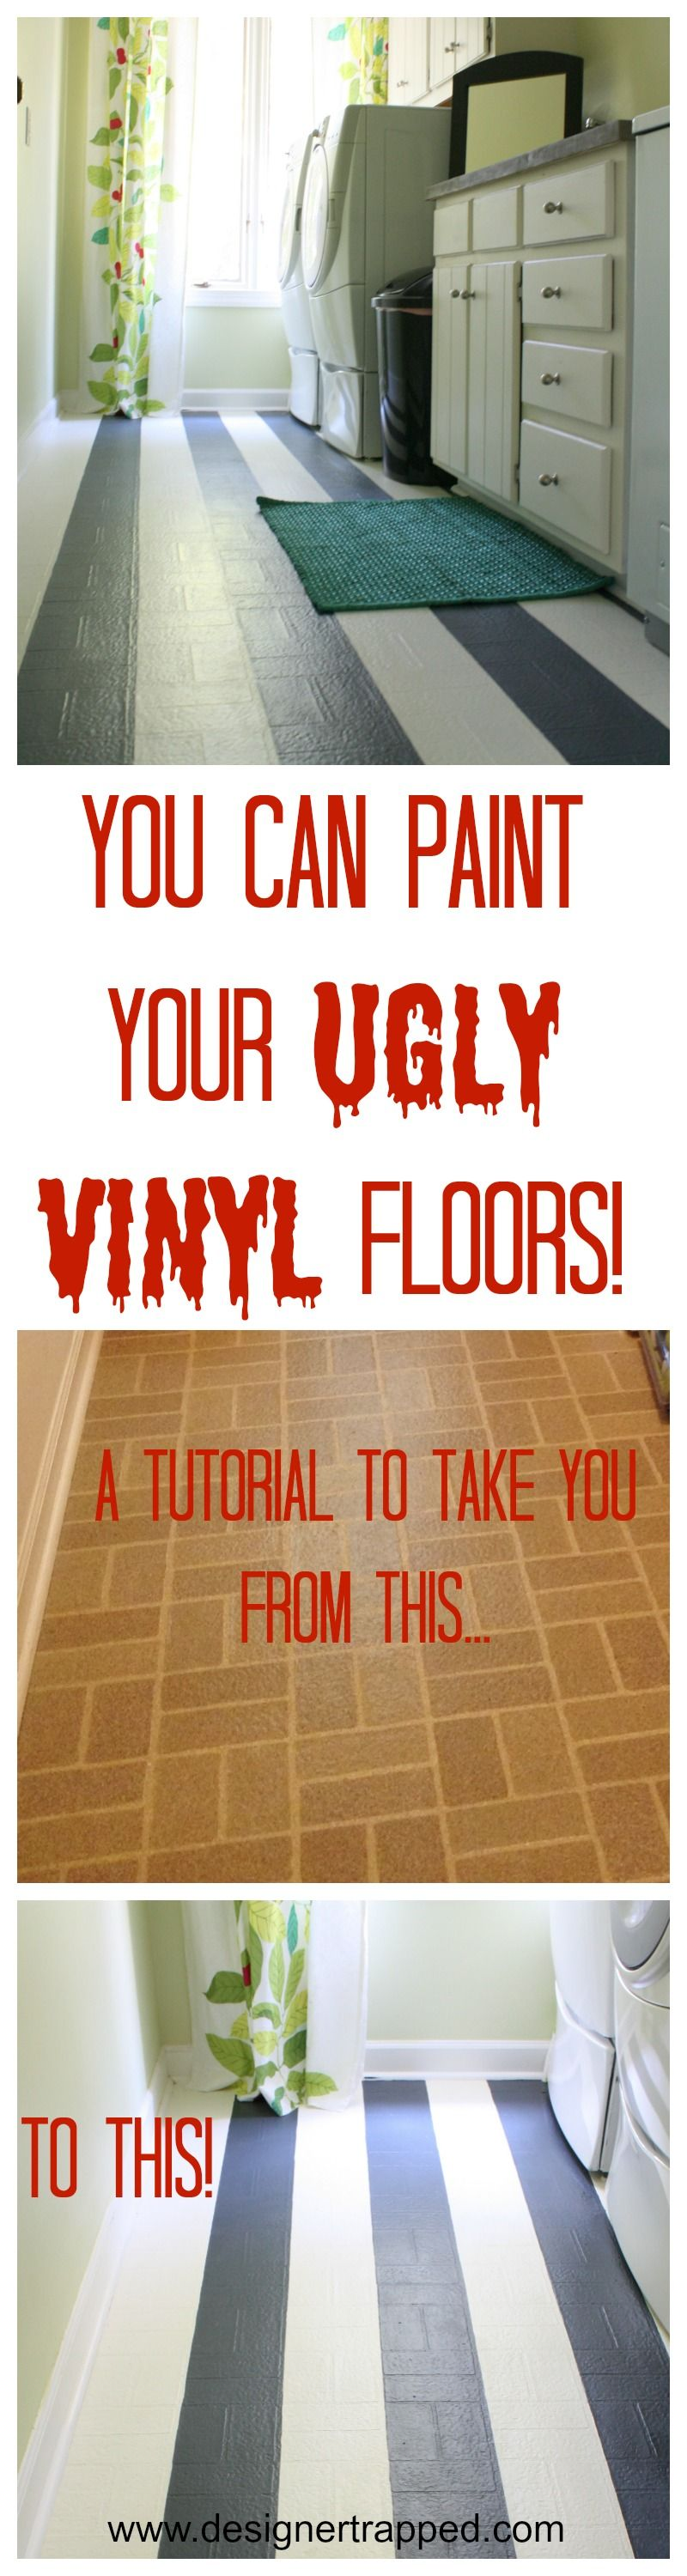 learn how to paint vinyl floors for long-lasting results | painted